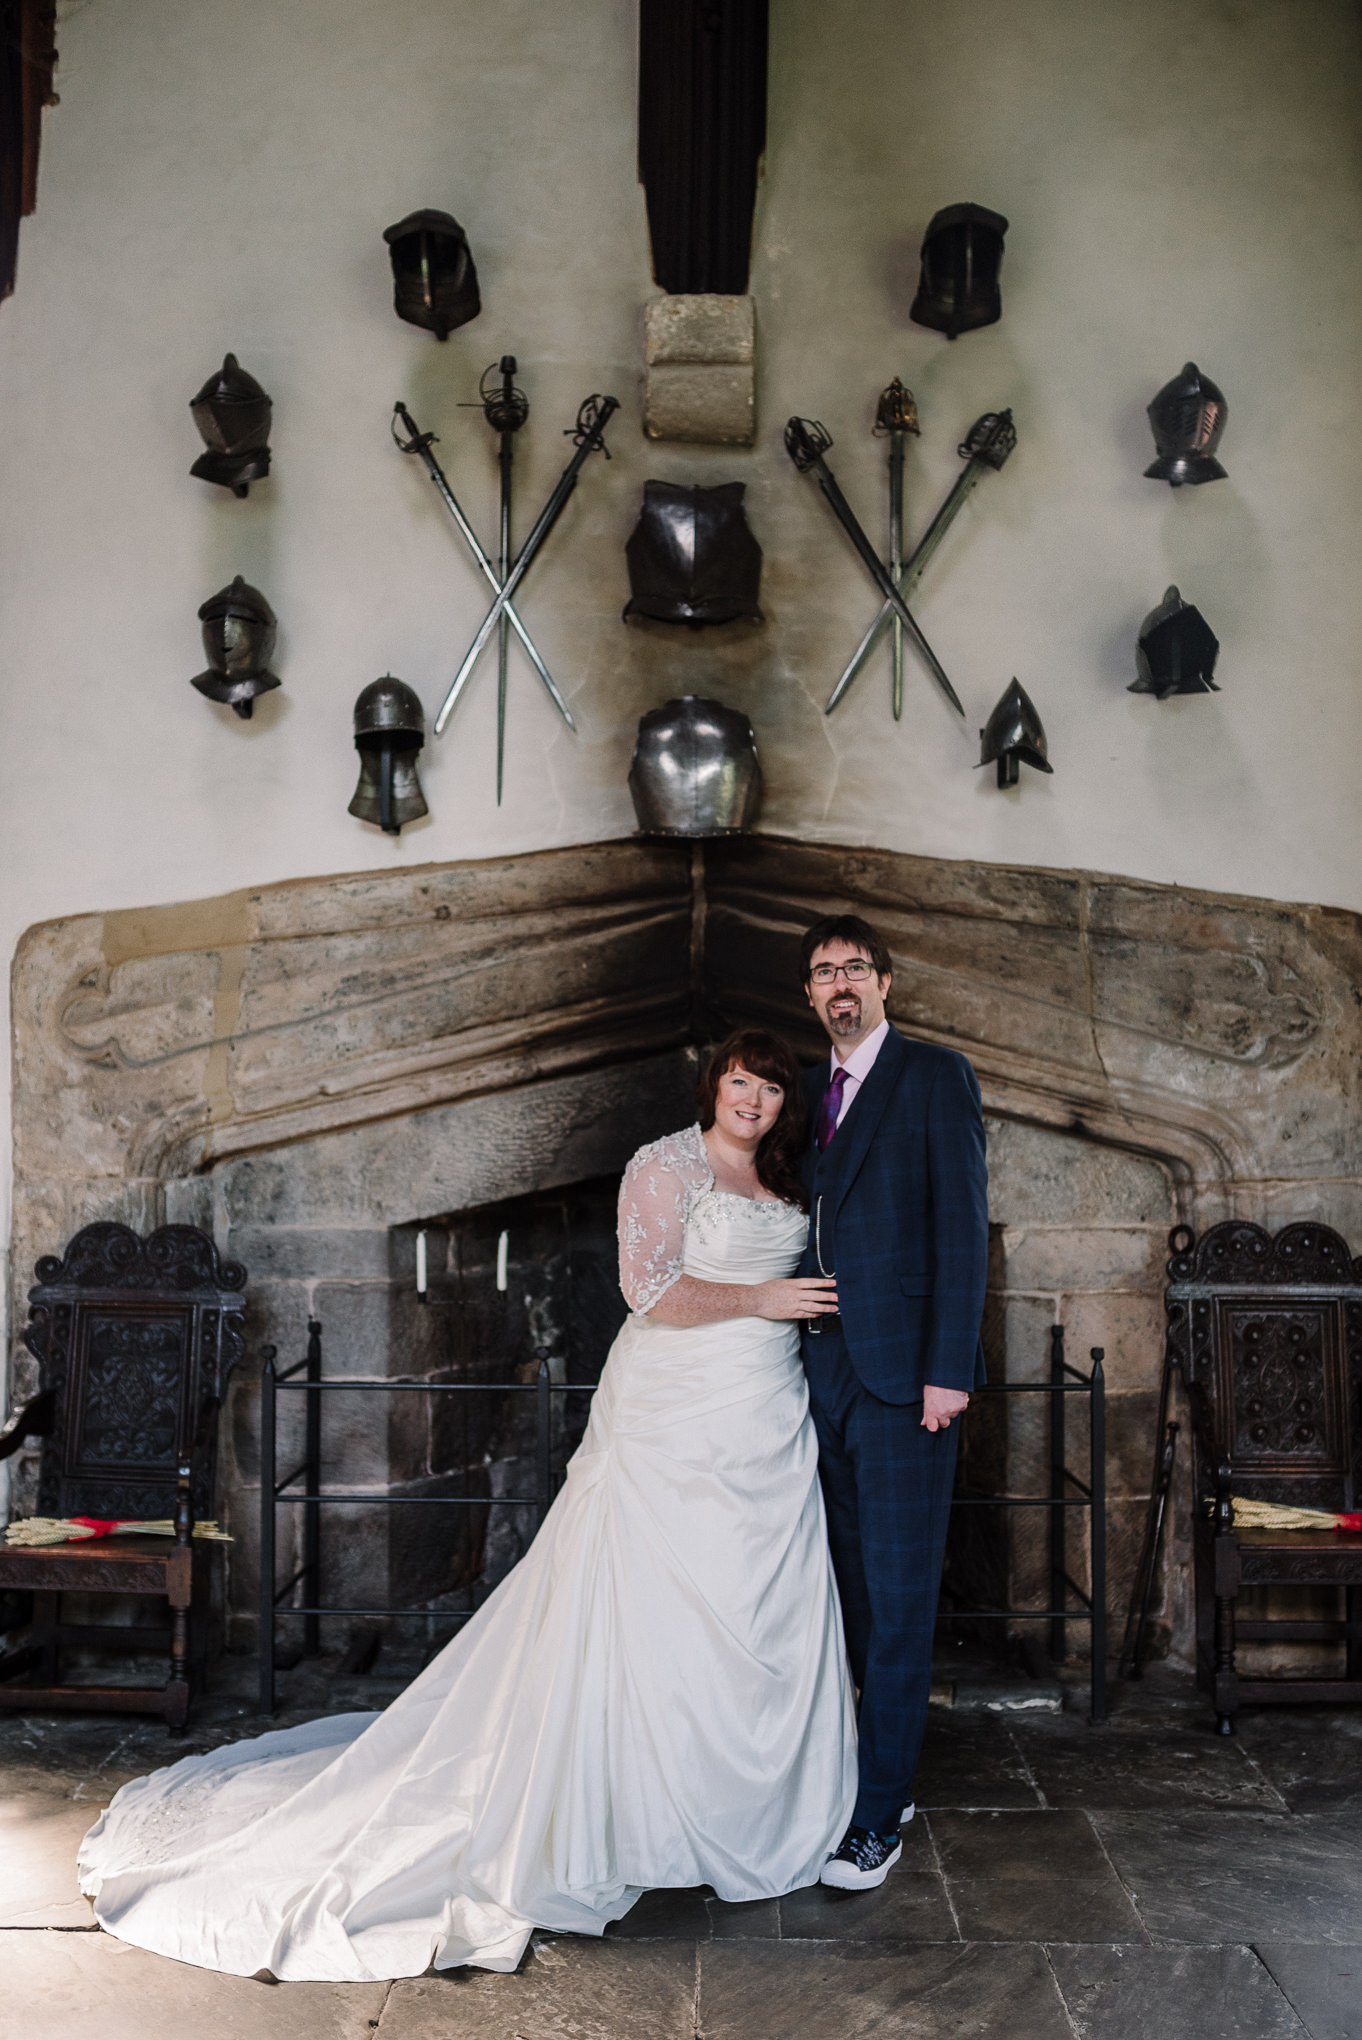 Bride and groom in front of armoured wall